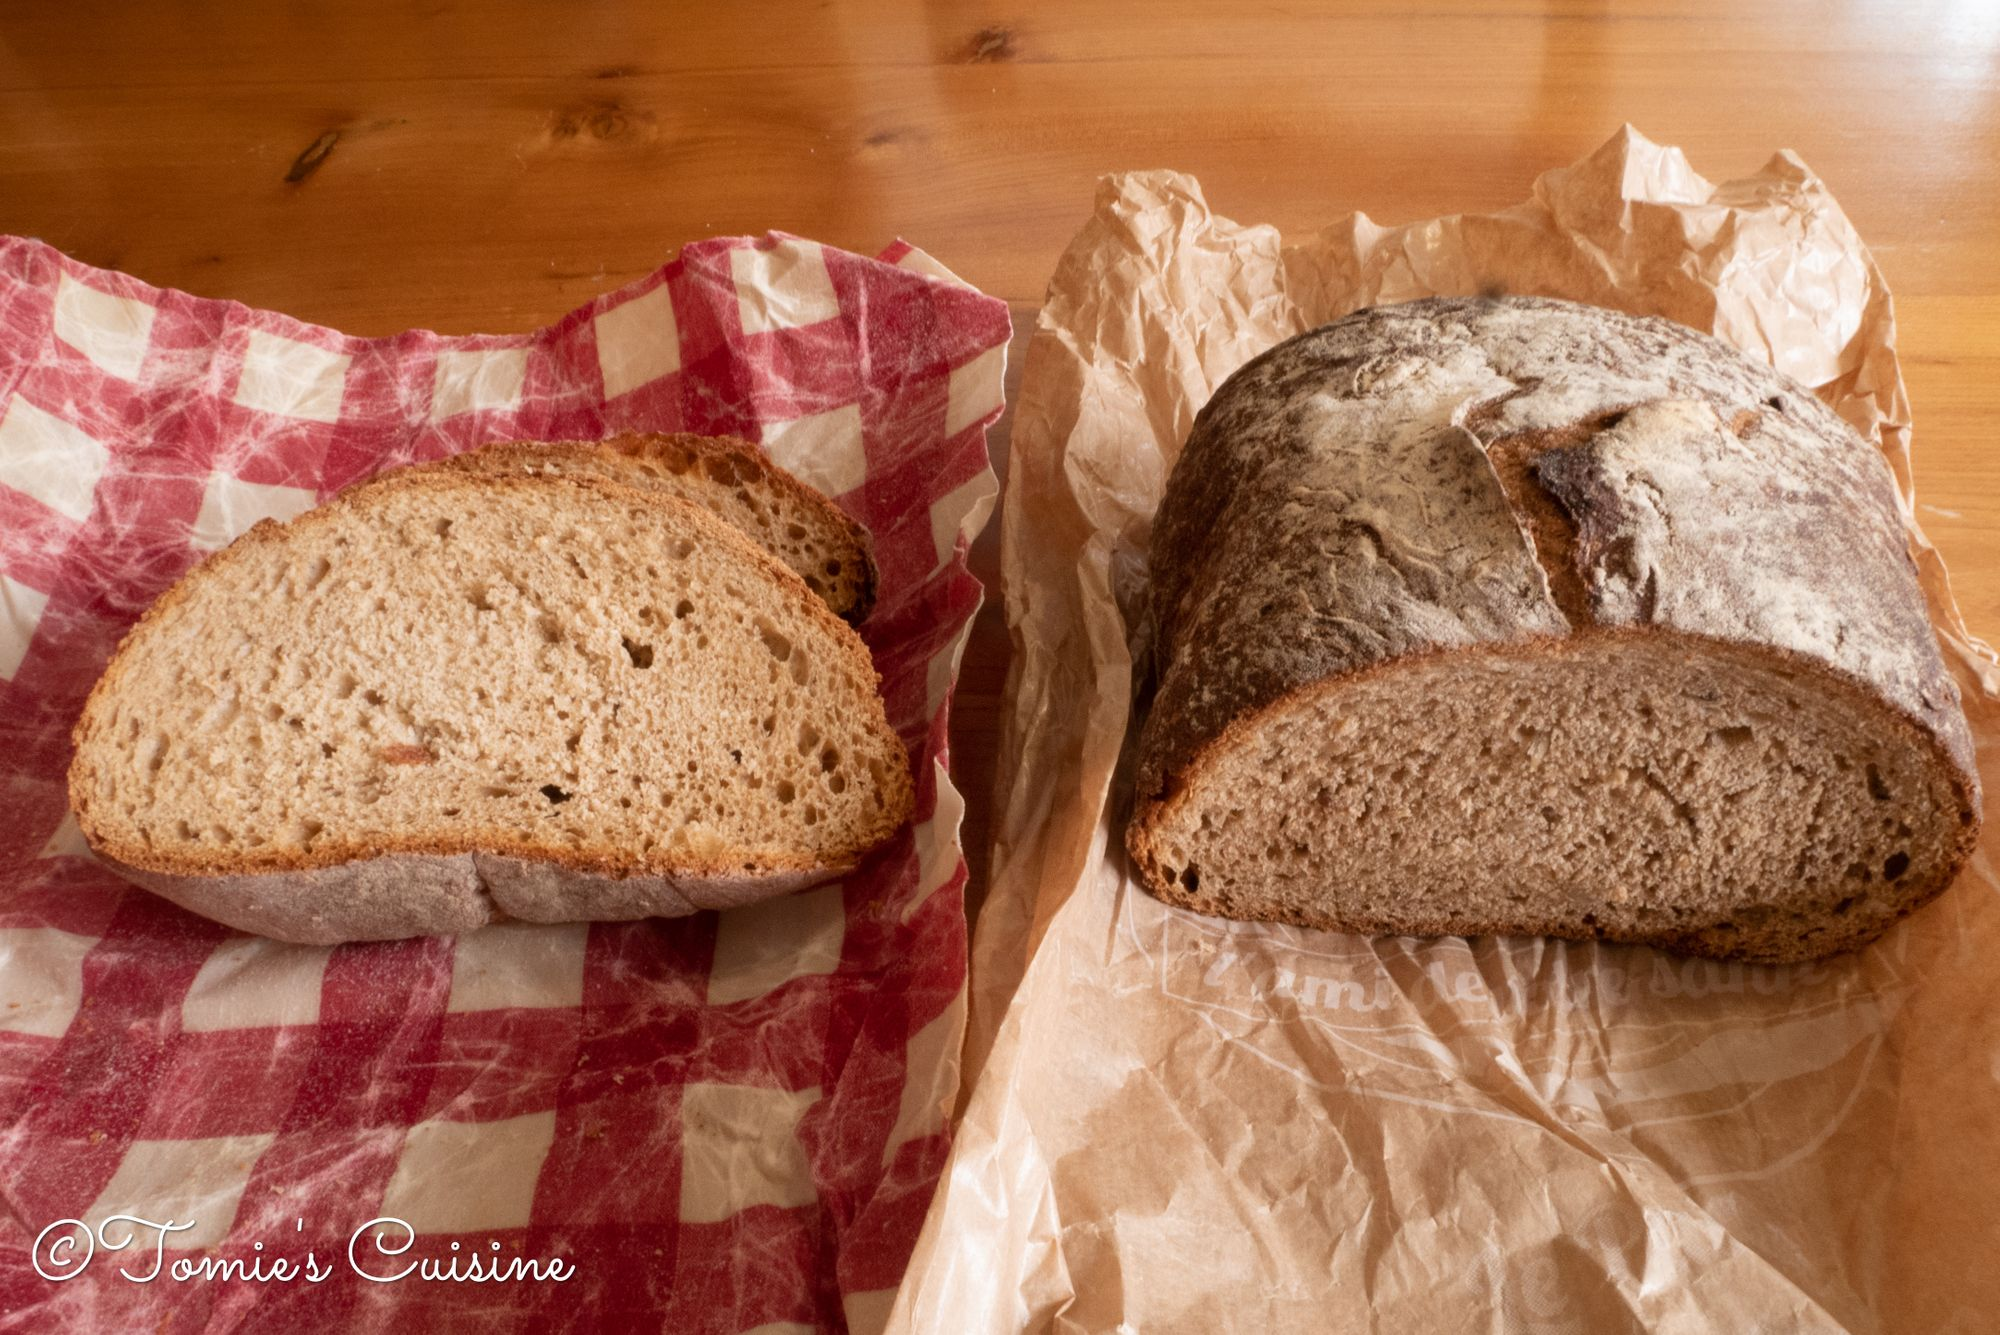 Two different but similar bread purchased on the same day